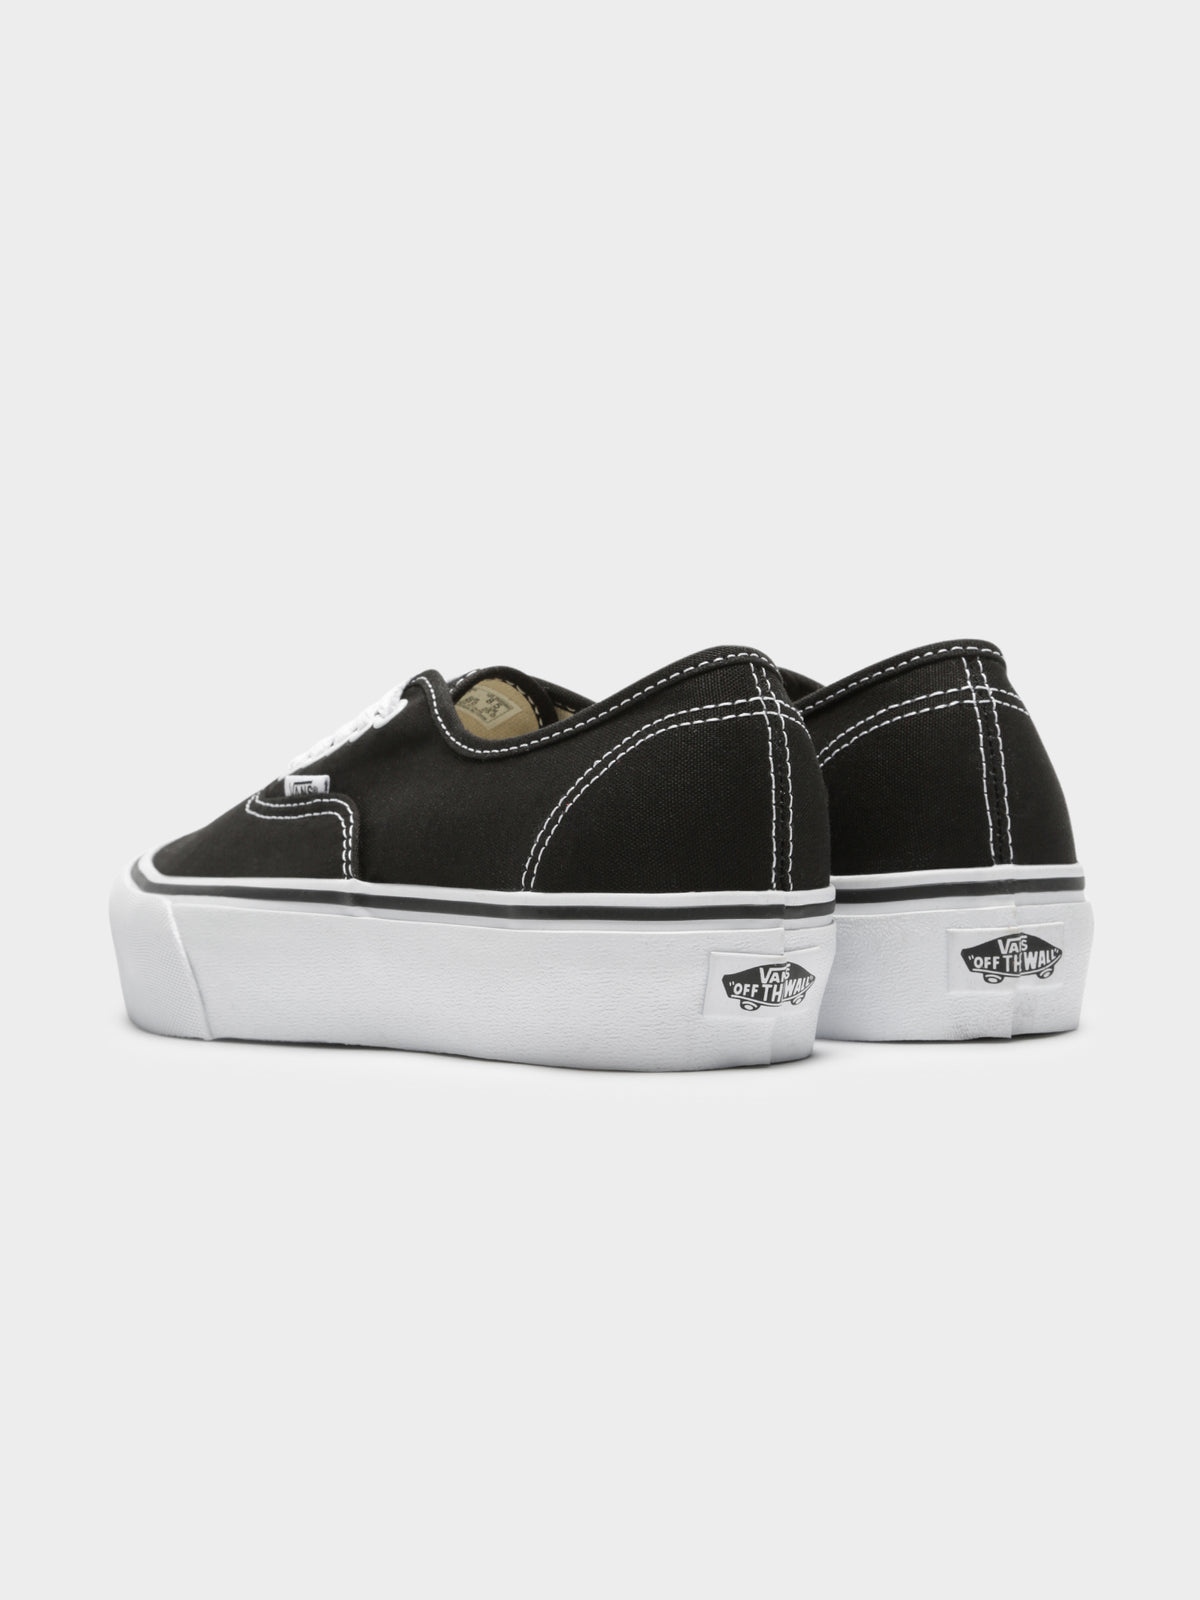 Womens Authentic Platform Sneakers in Black